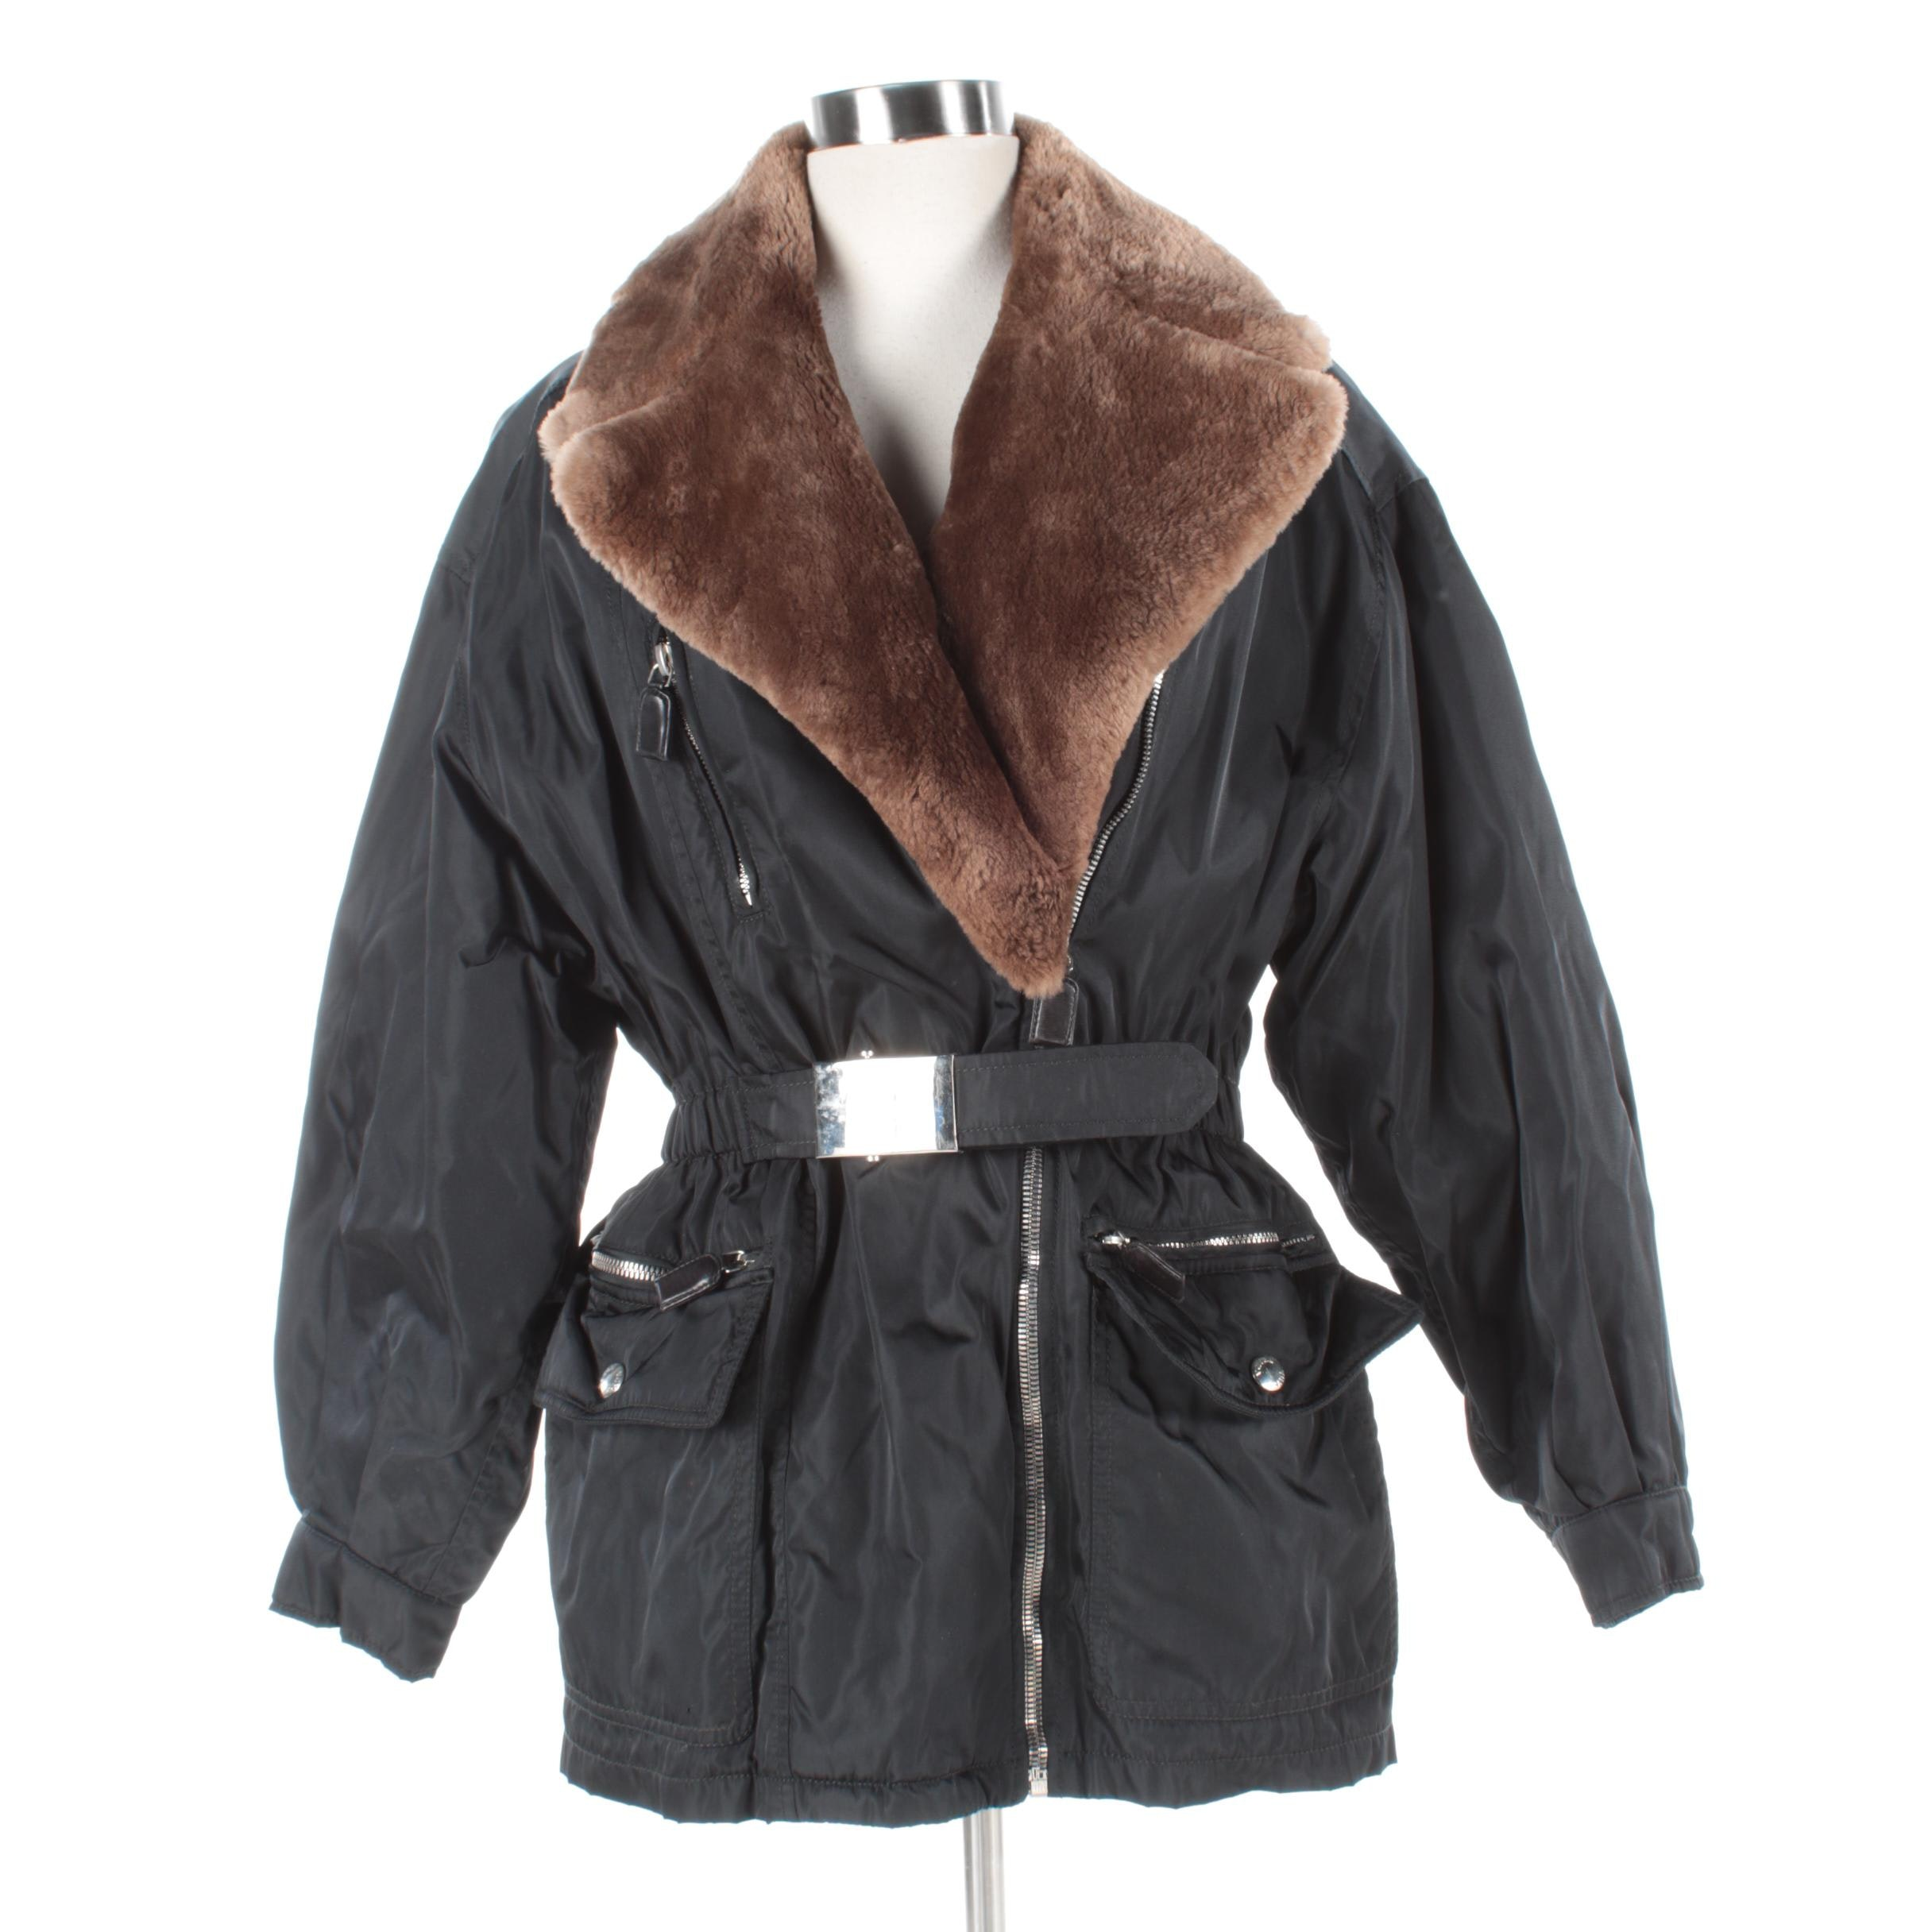 Women's Prada Milano Black Nylon Coat with Sheared Beaver Fur Collar